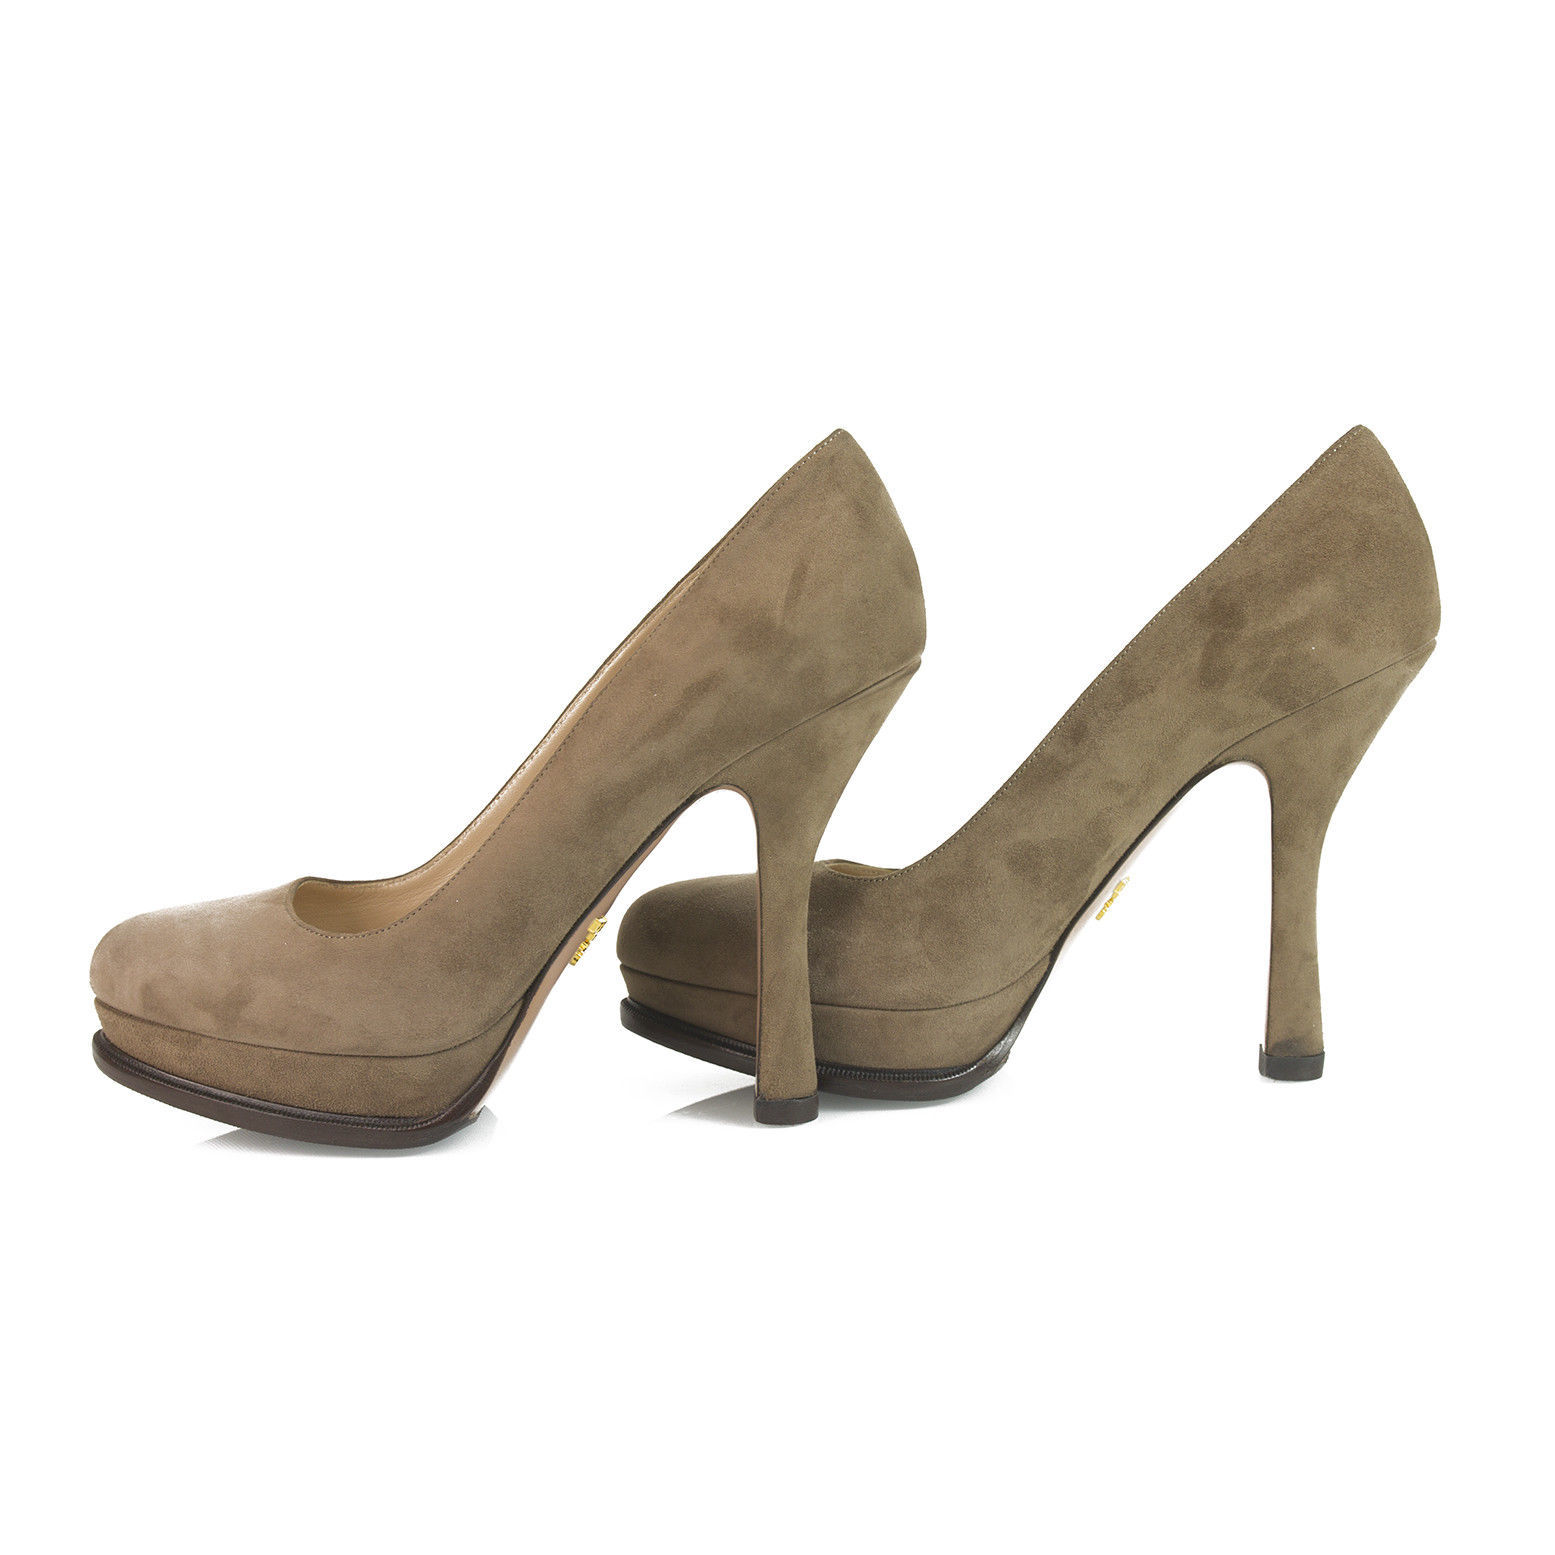 Prada Taupe Brown Suede Leather Classic Pumps Round Toe Slim Heel Platform sz 40 image 4